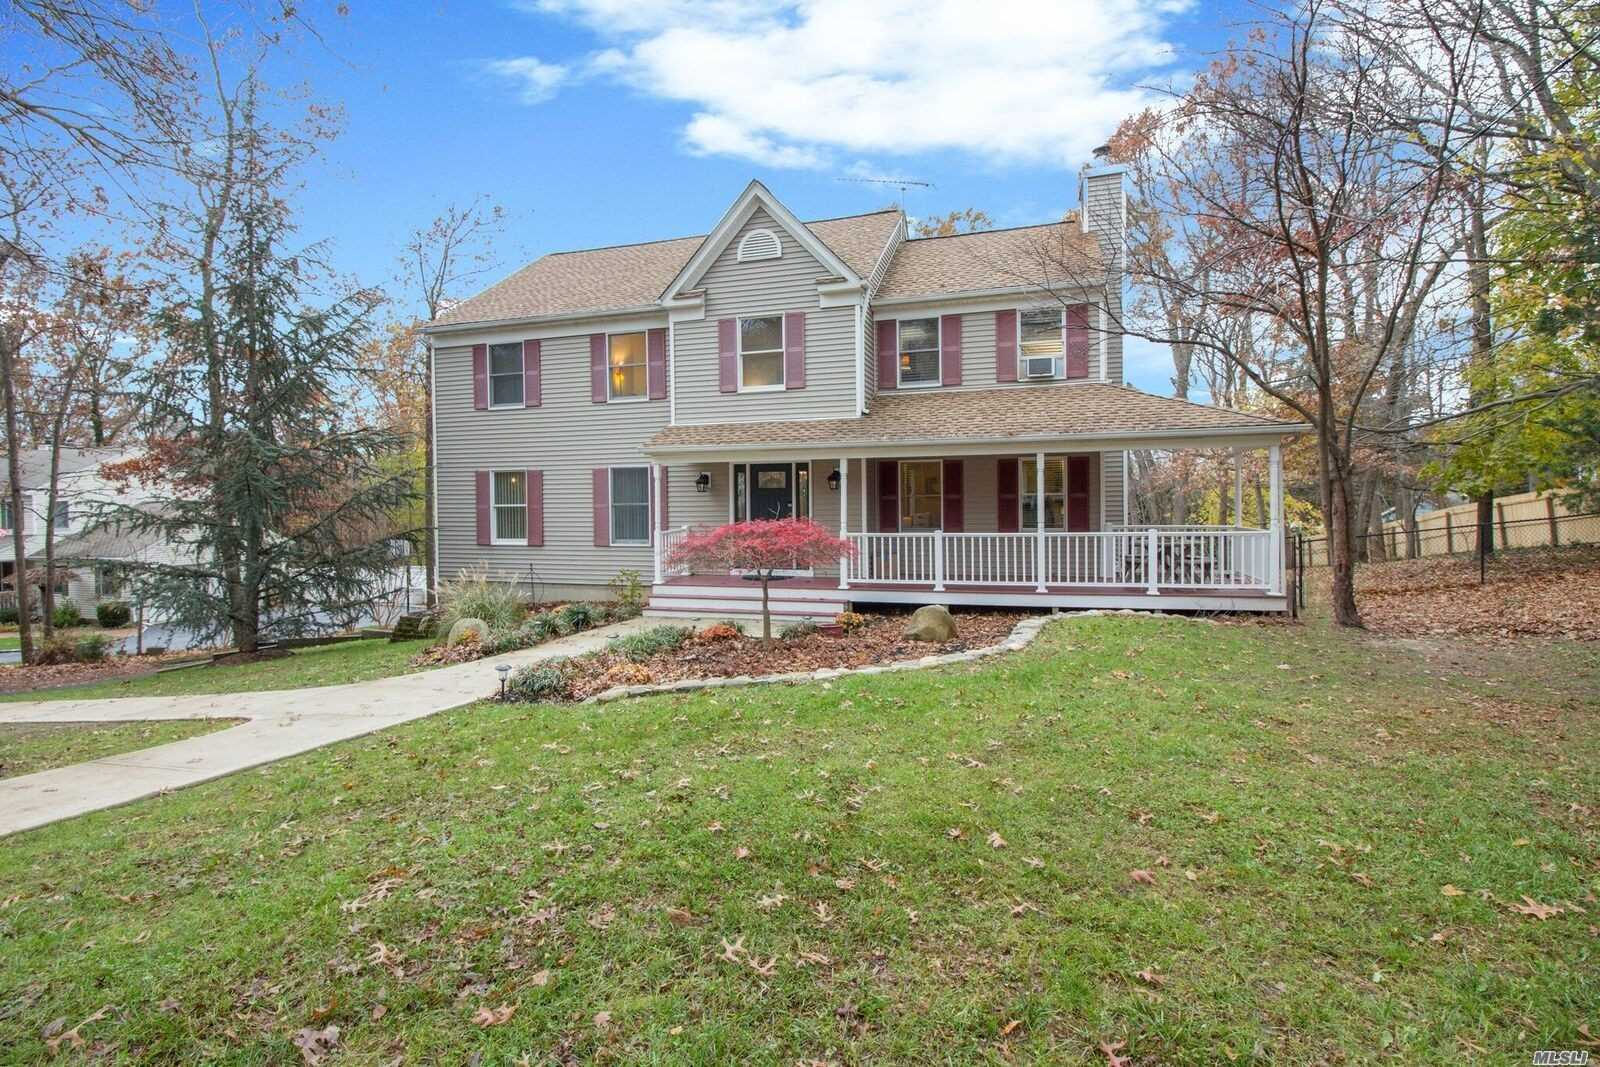 Great Home With Open Layout, Form Lr & Dr, True Eik,  Master En Suite, 3 Large Br, Den W/Fireplace, Laundry On 1st Fl, 2 Car Garage, Pool Off Deck, Very Private Backyard, 1/2 Acre. Taxes Being Grieved. Should Drop 2K